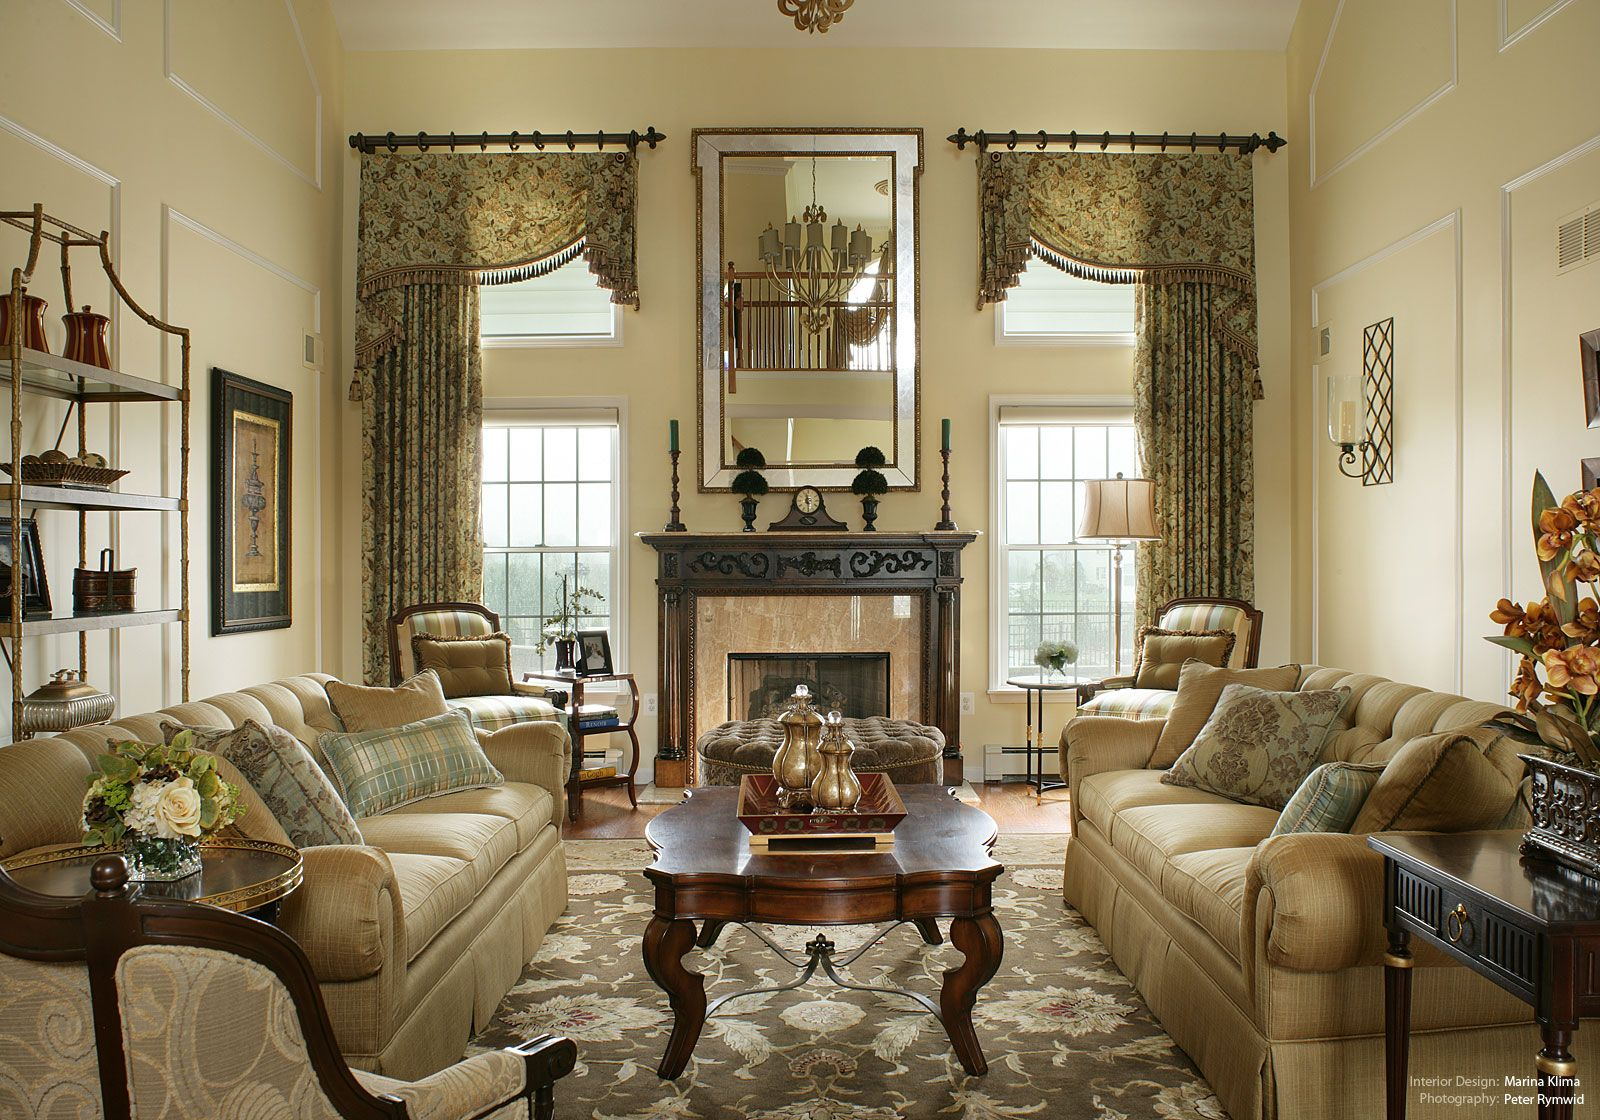 Best Images About TALL WINDOWS On Pinterest High Ceilings - Traditional living room designs